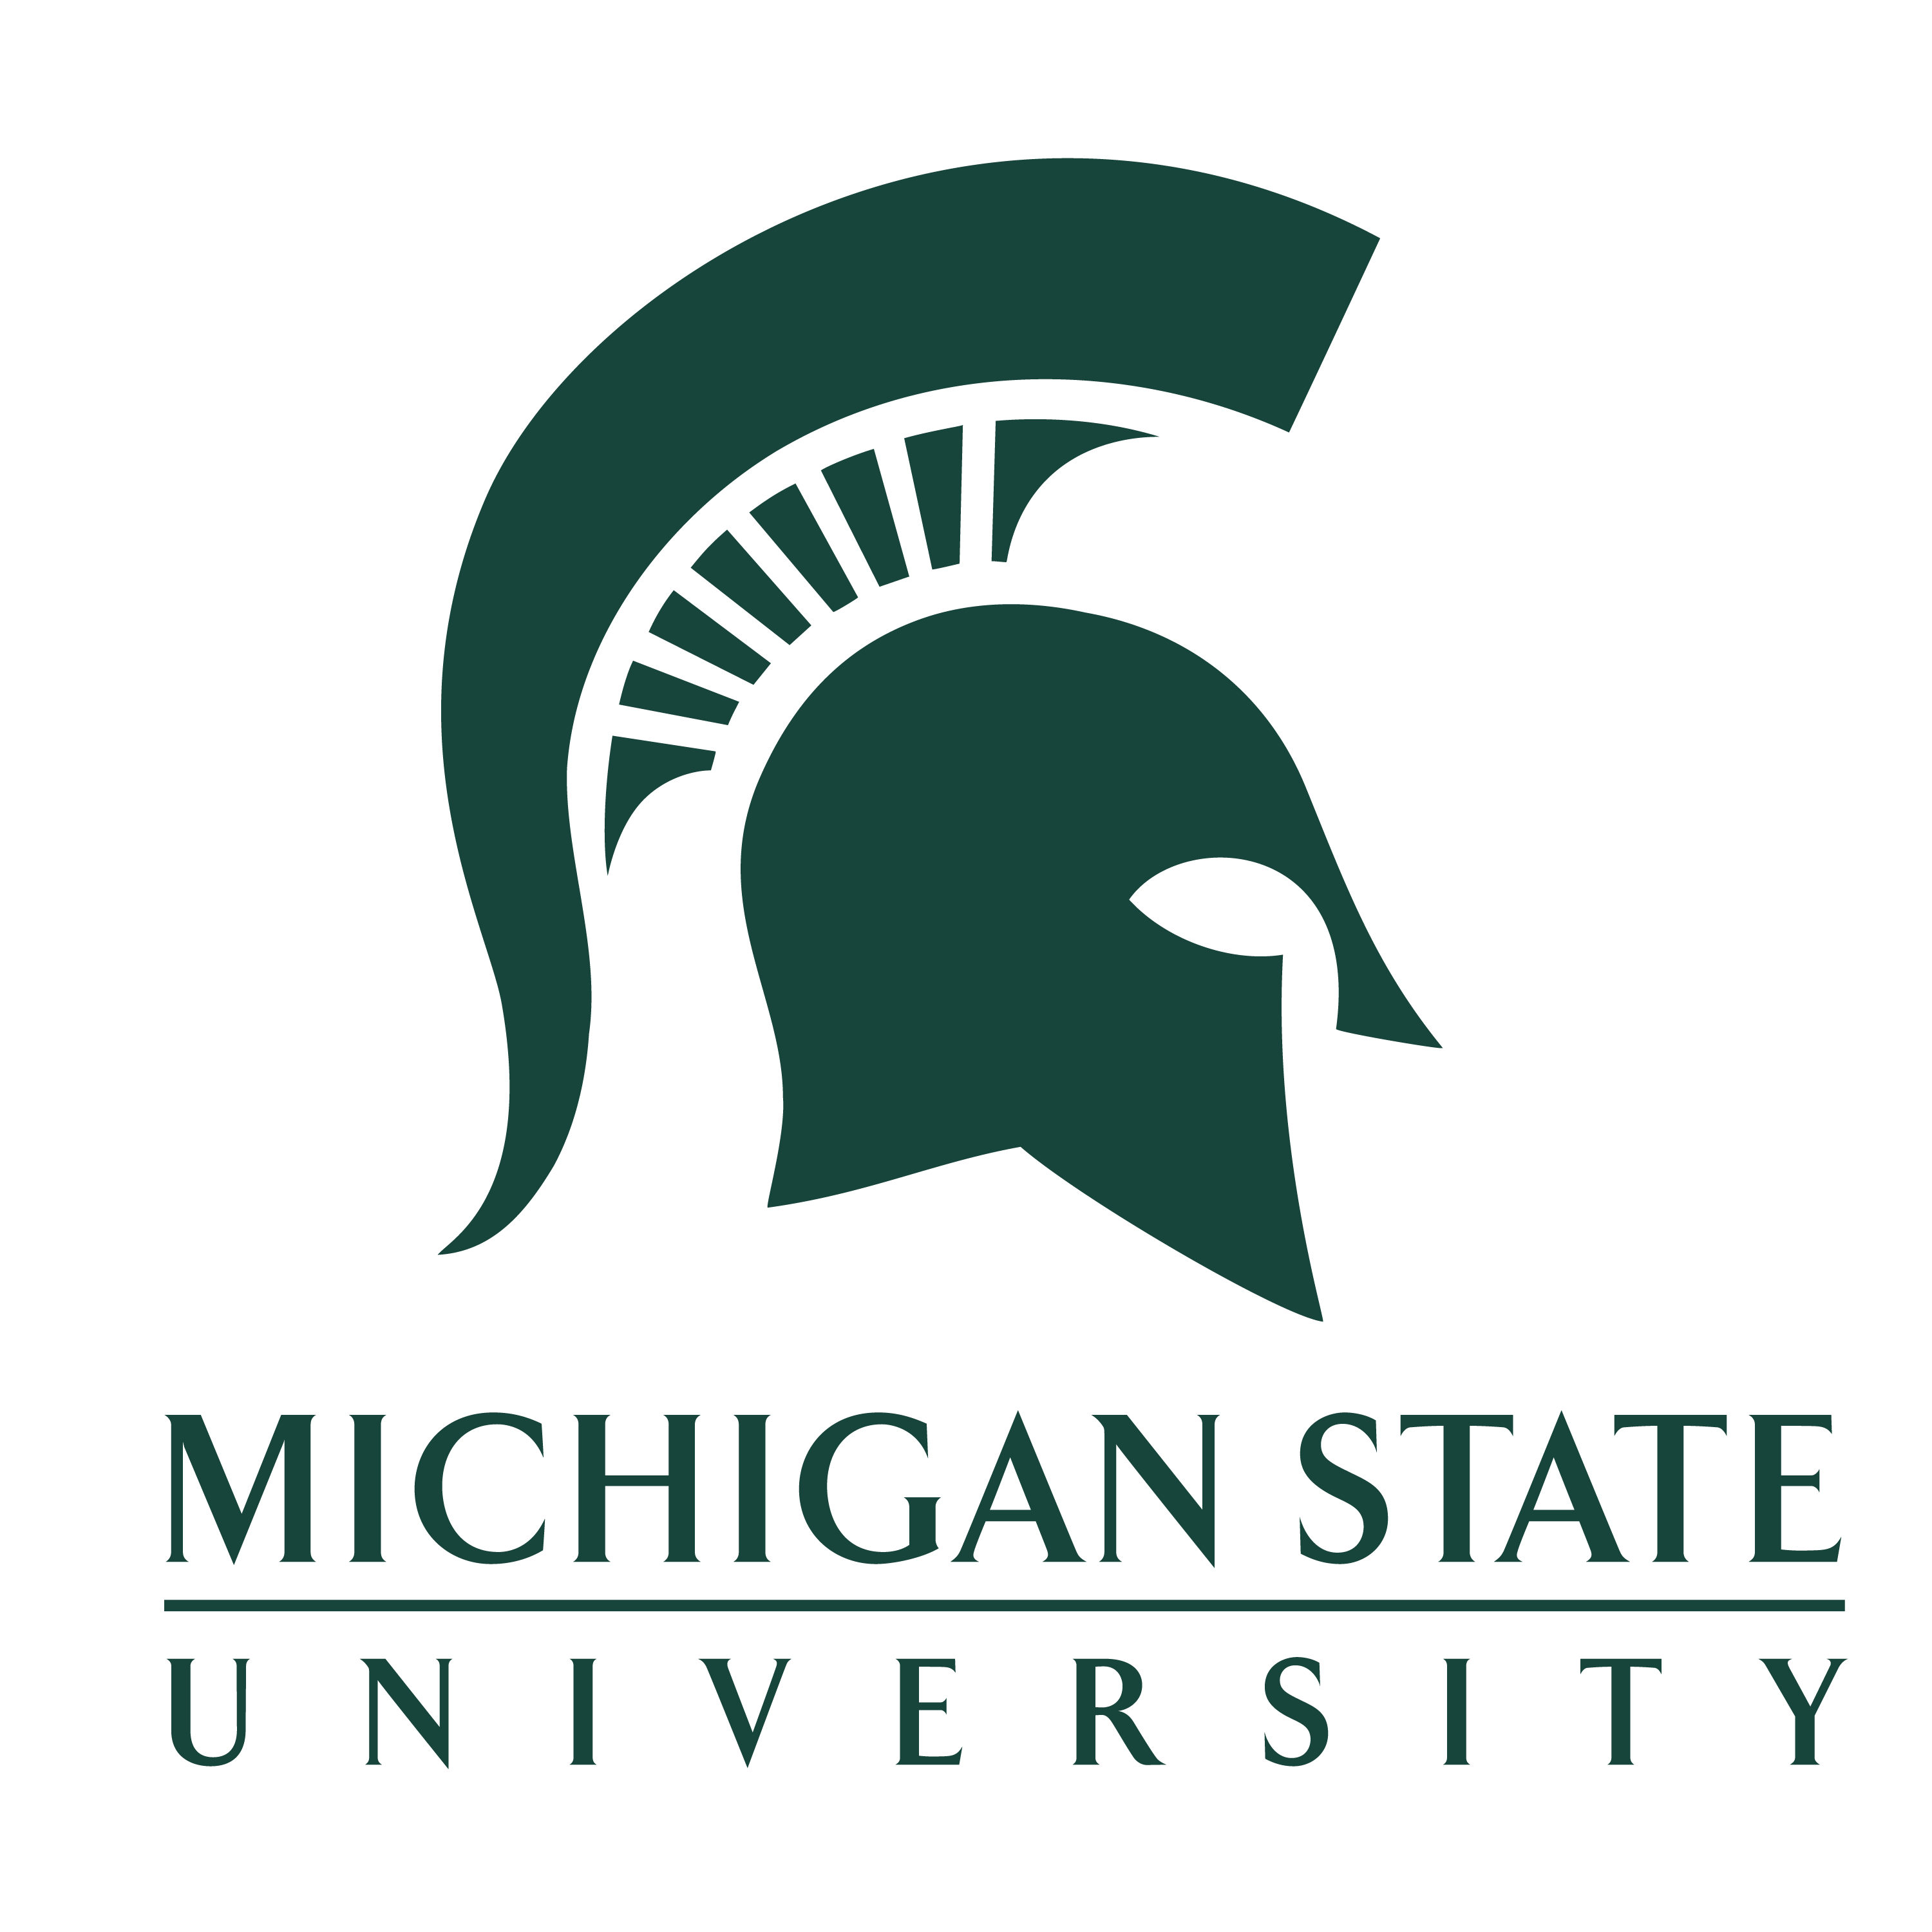 Collaborator: Michigan State University